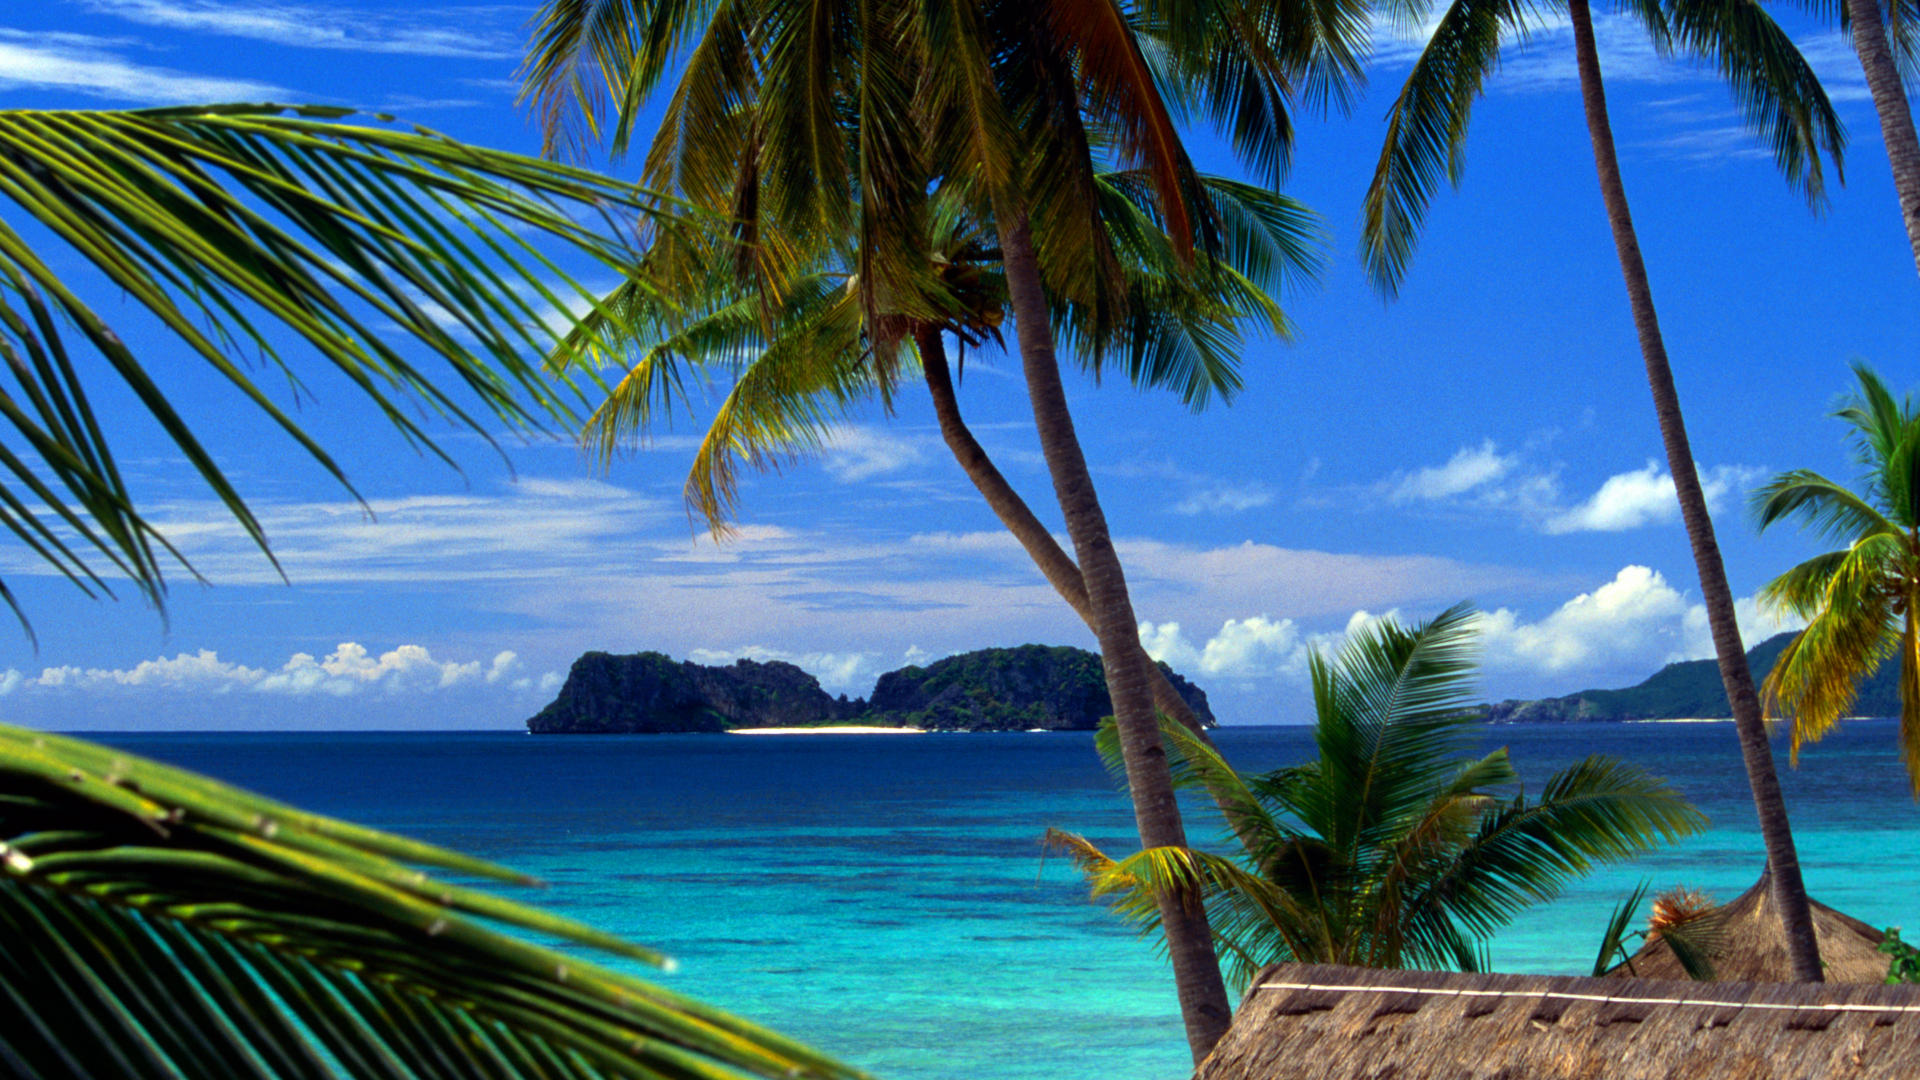 Caribbean Island Desktop Backgrounds 1920x1080